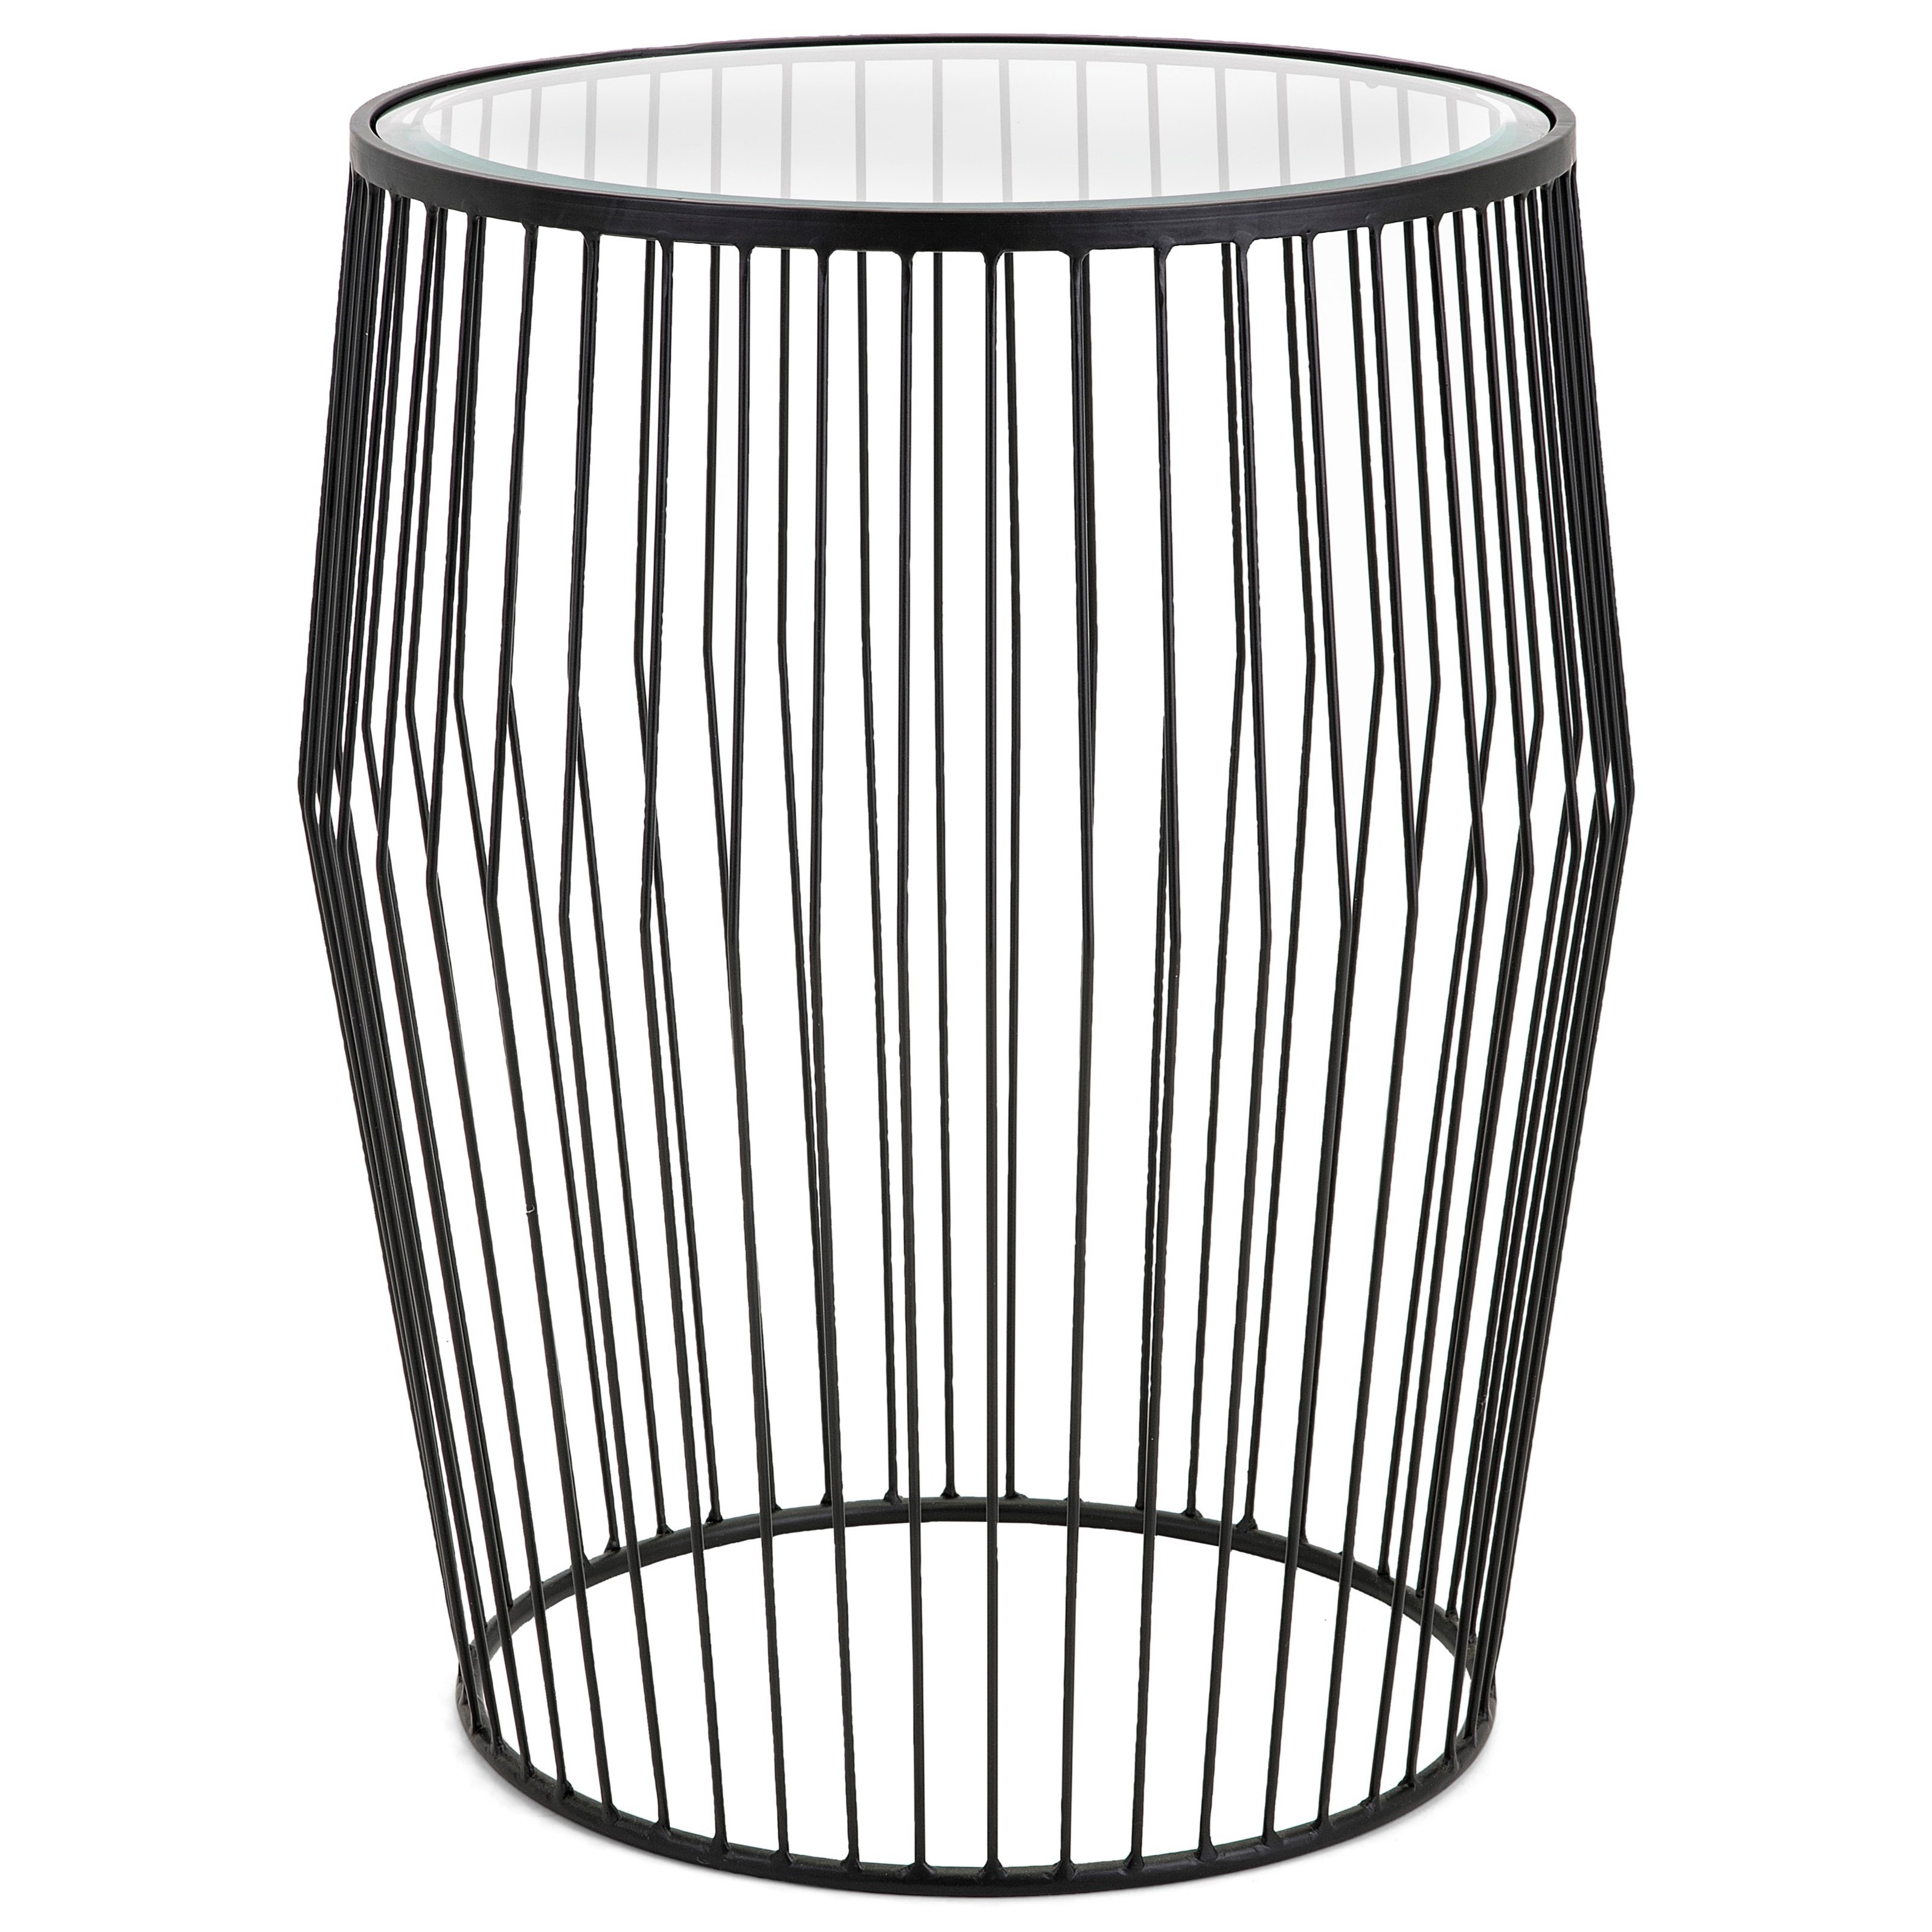 Zara Metal and Glass Cocktail Table